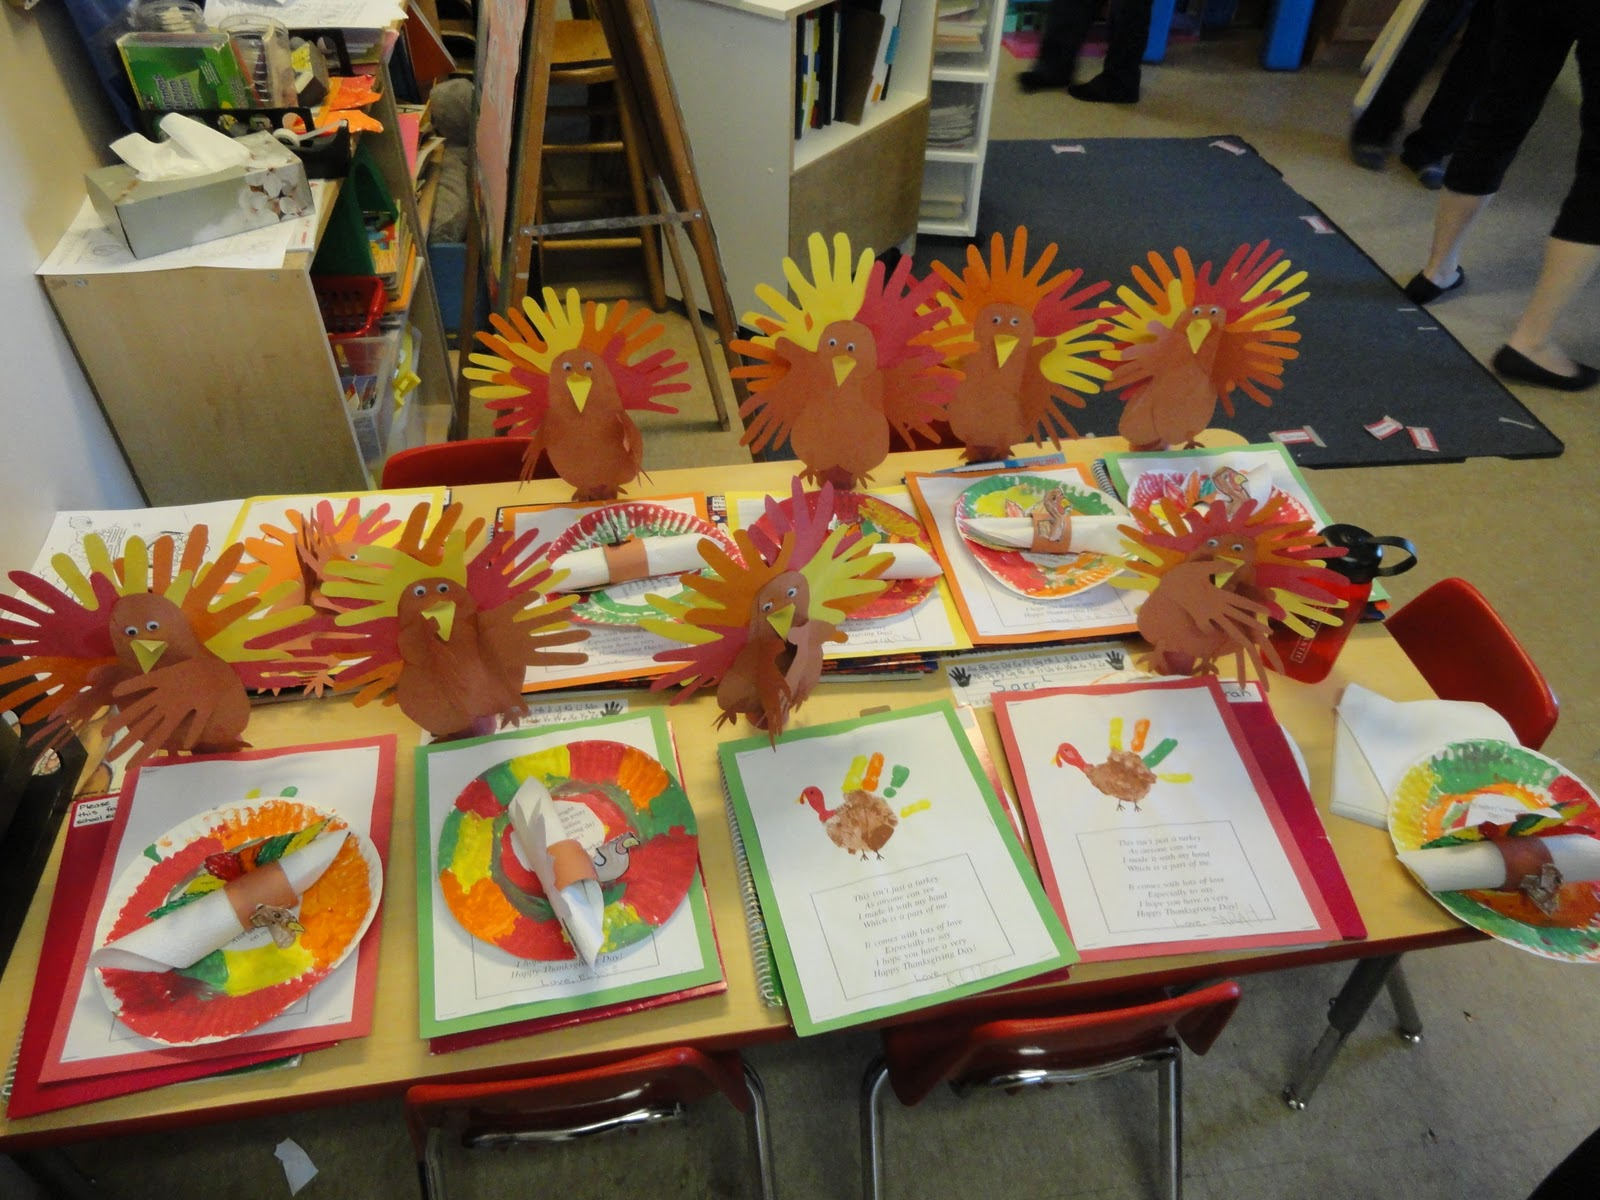 Milton Christian School Thanksgiving Crafts